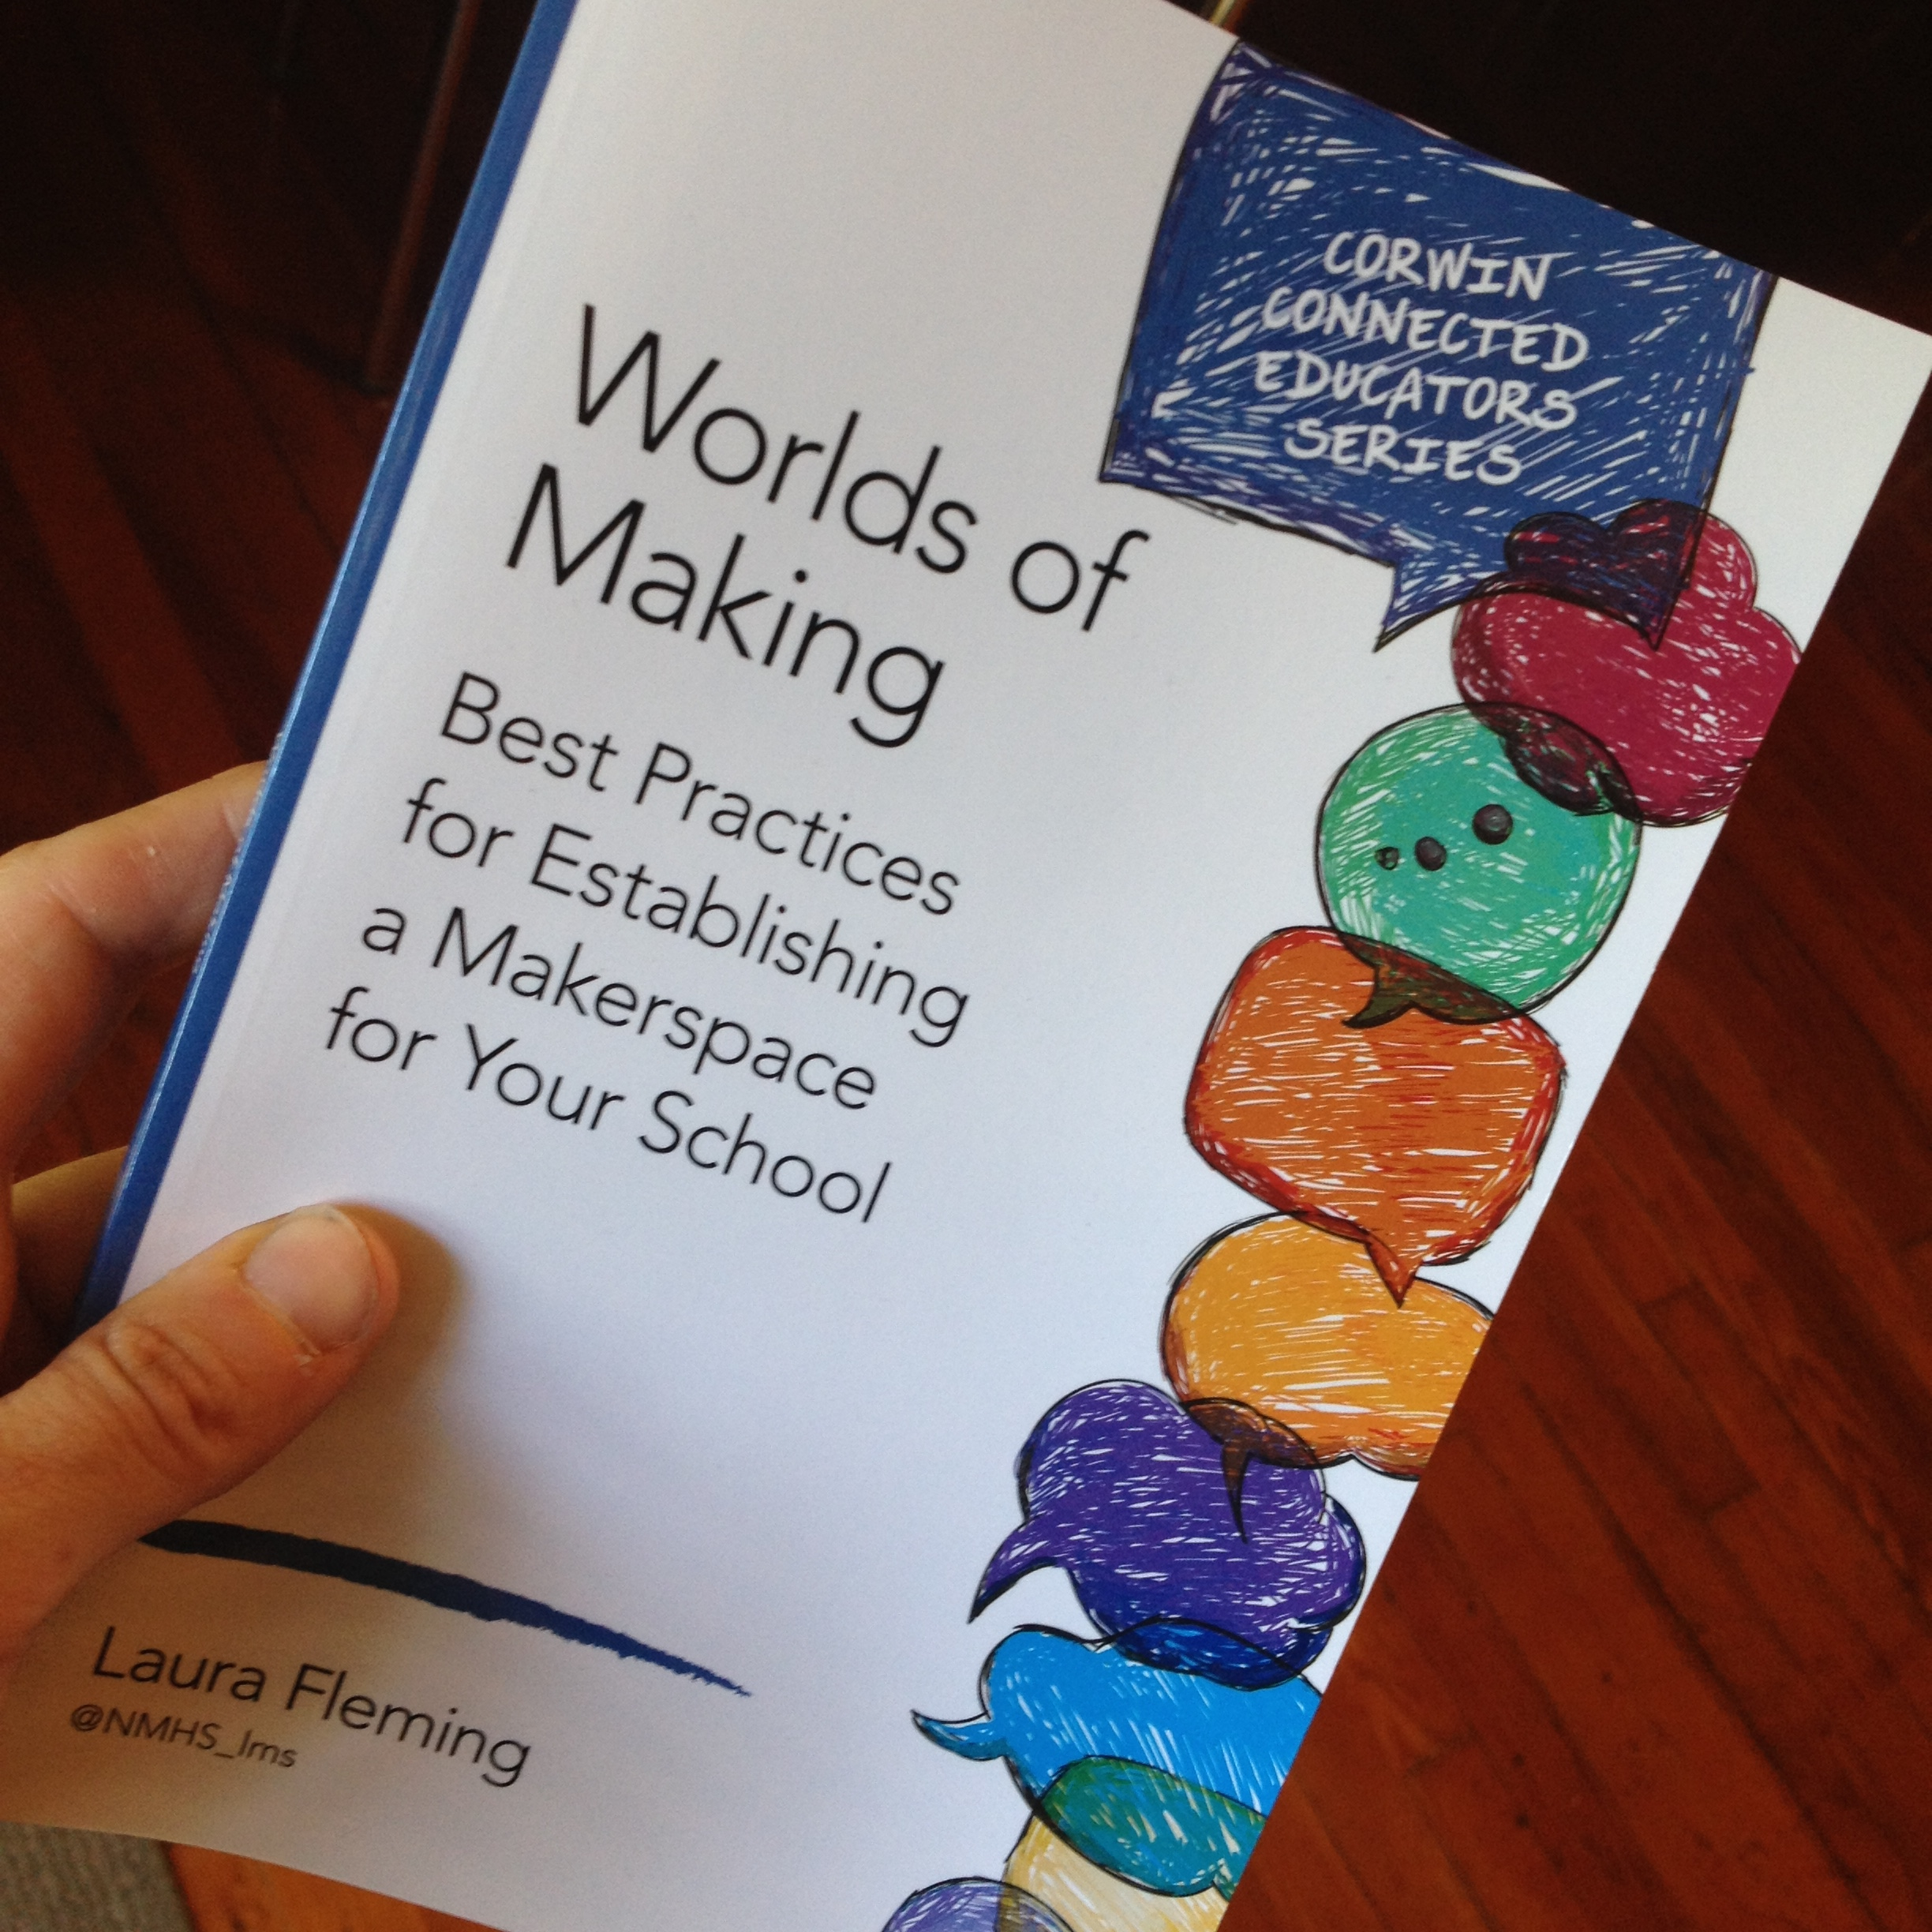 Book Review: Worlds of Making by Laura Fleming